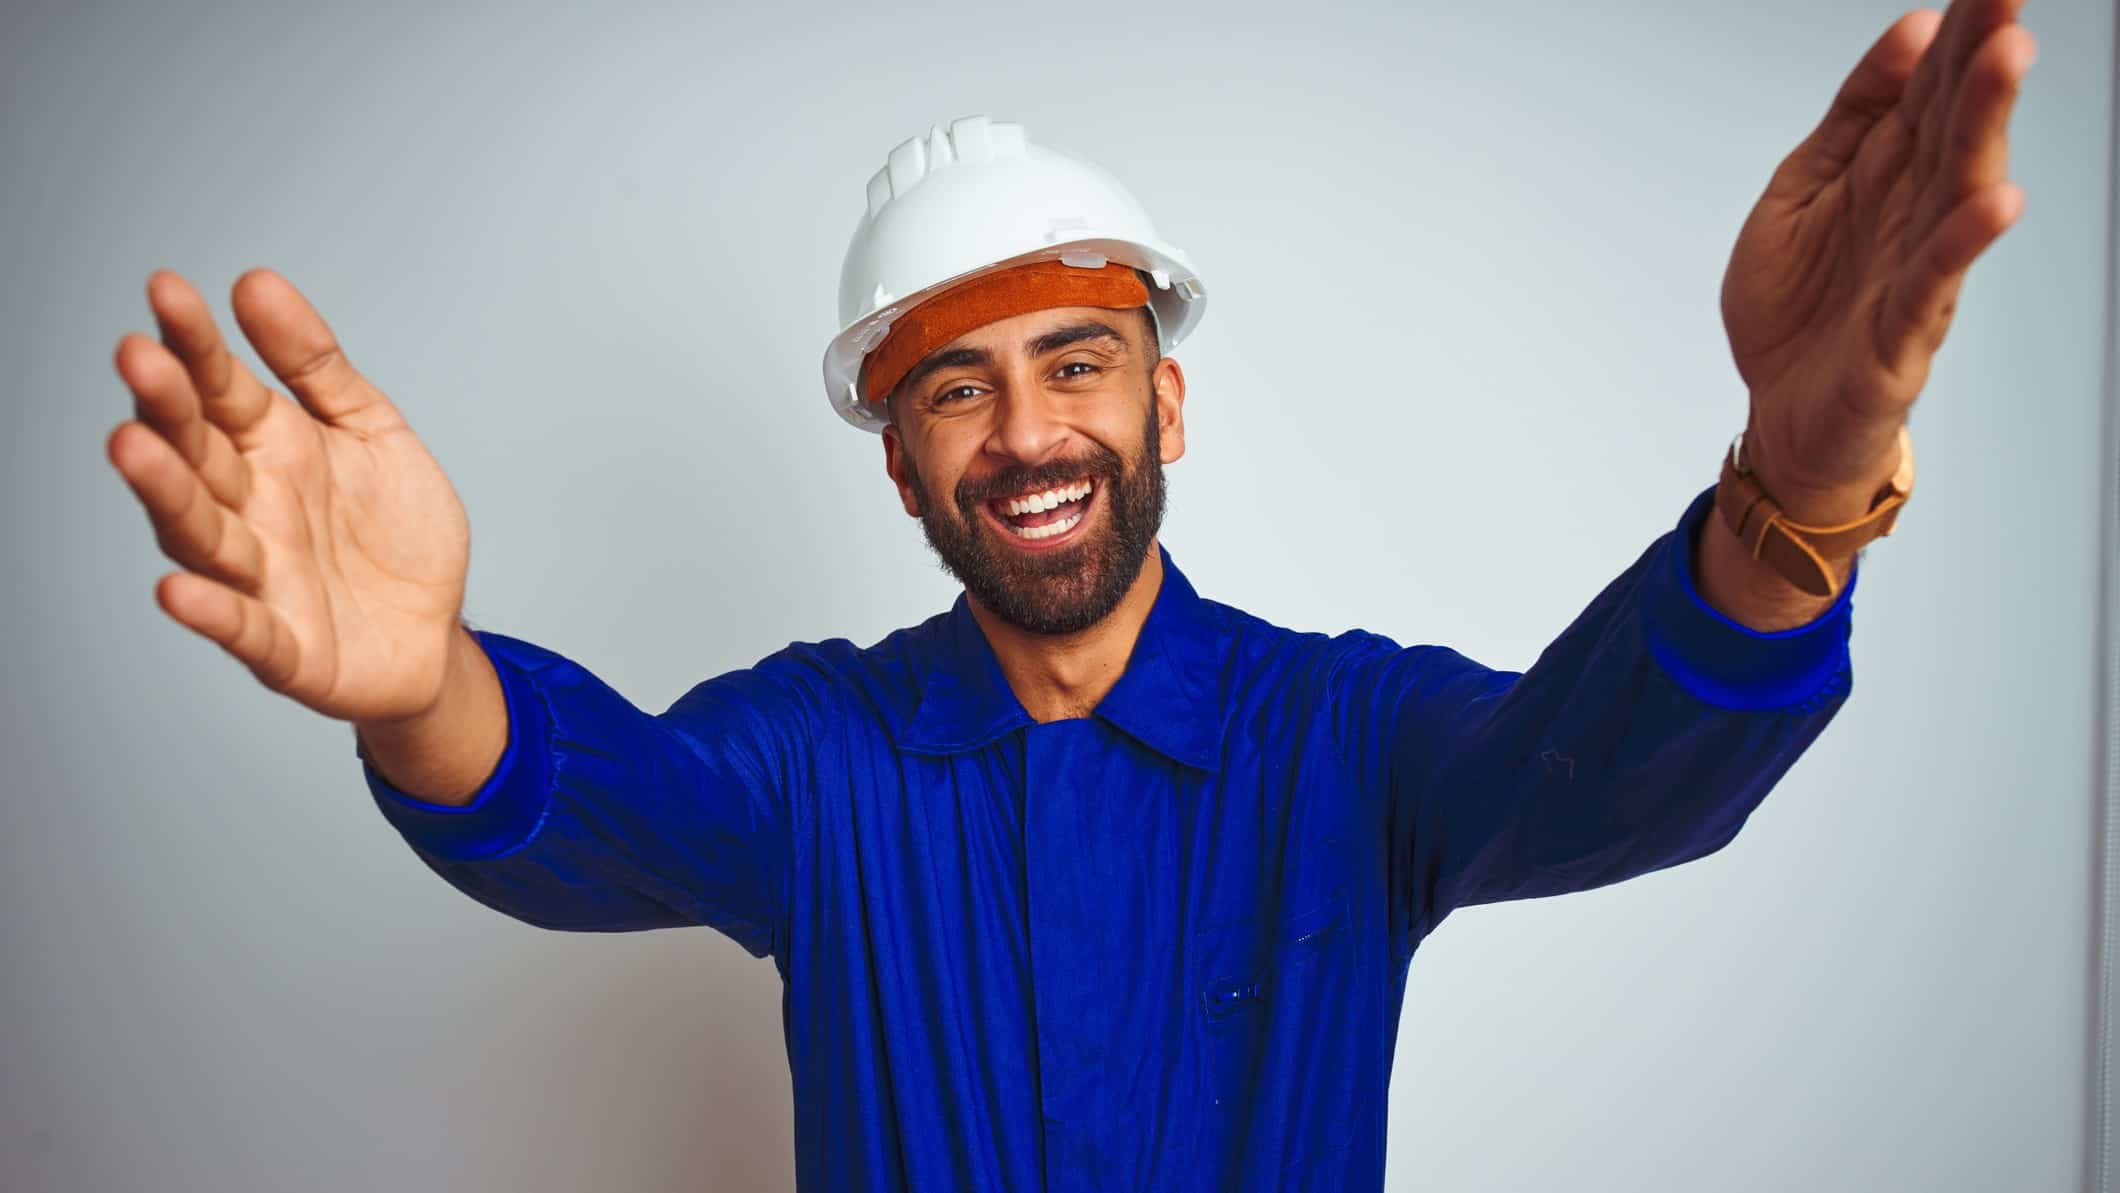 a man in a hard hat and overalls raises his arms and holds them out wide as he smiles widely in an optimistic and welcoming gesture.